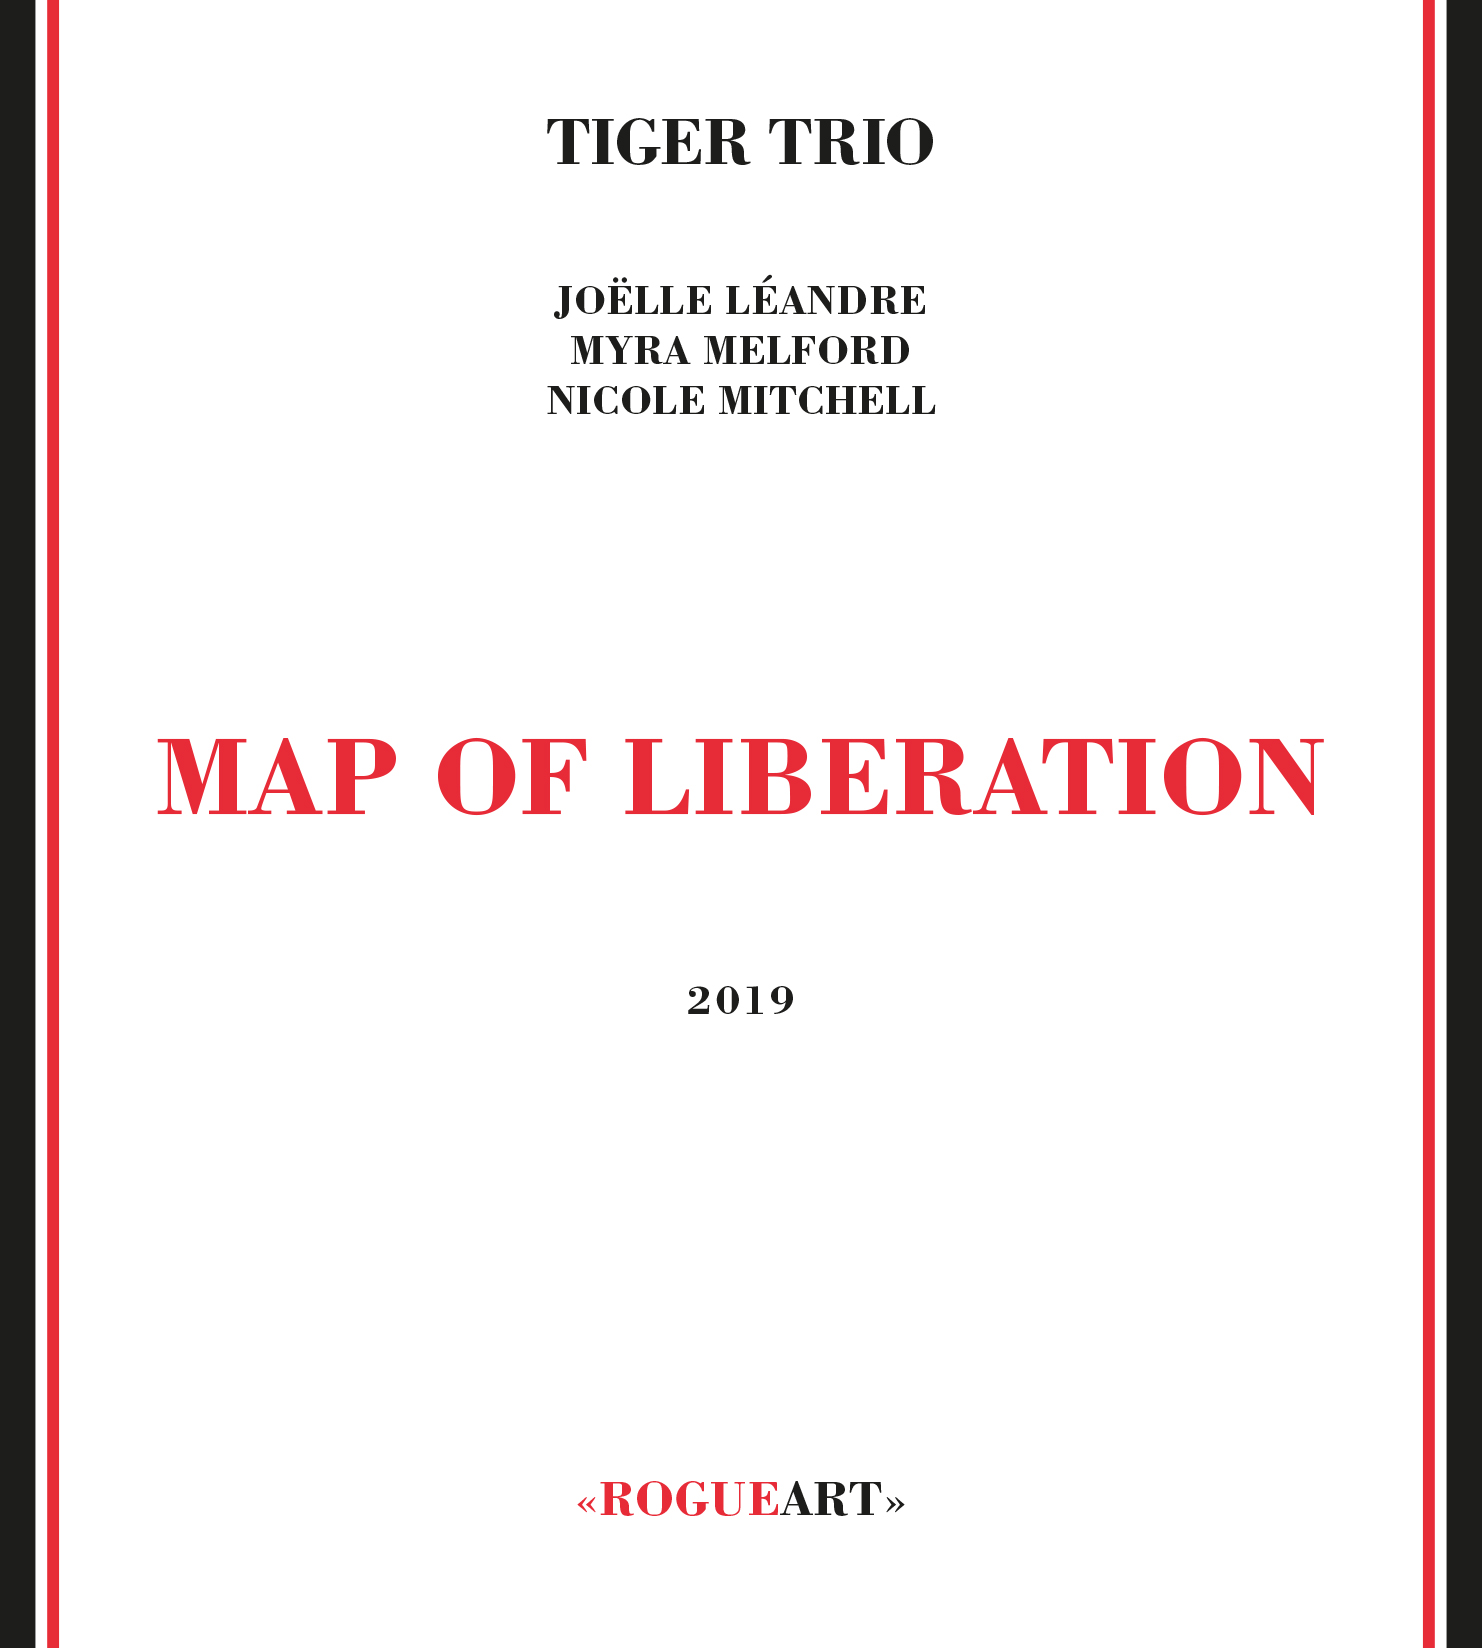 Front cover of the album MAP OF LIBERATION